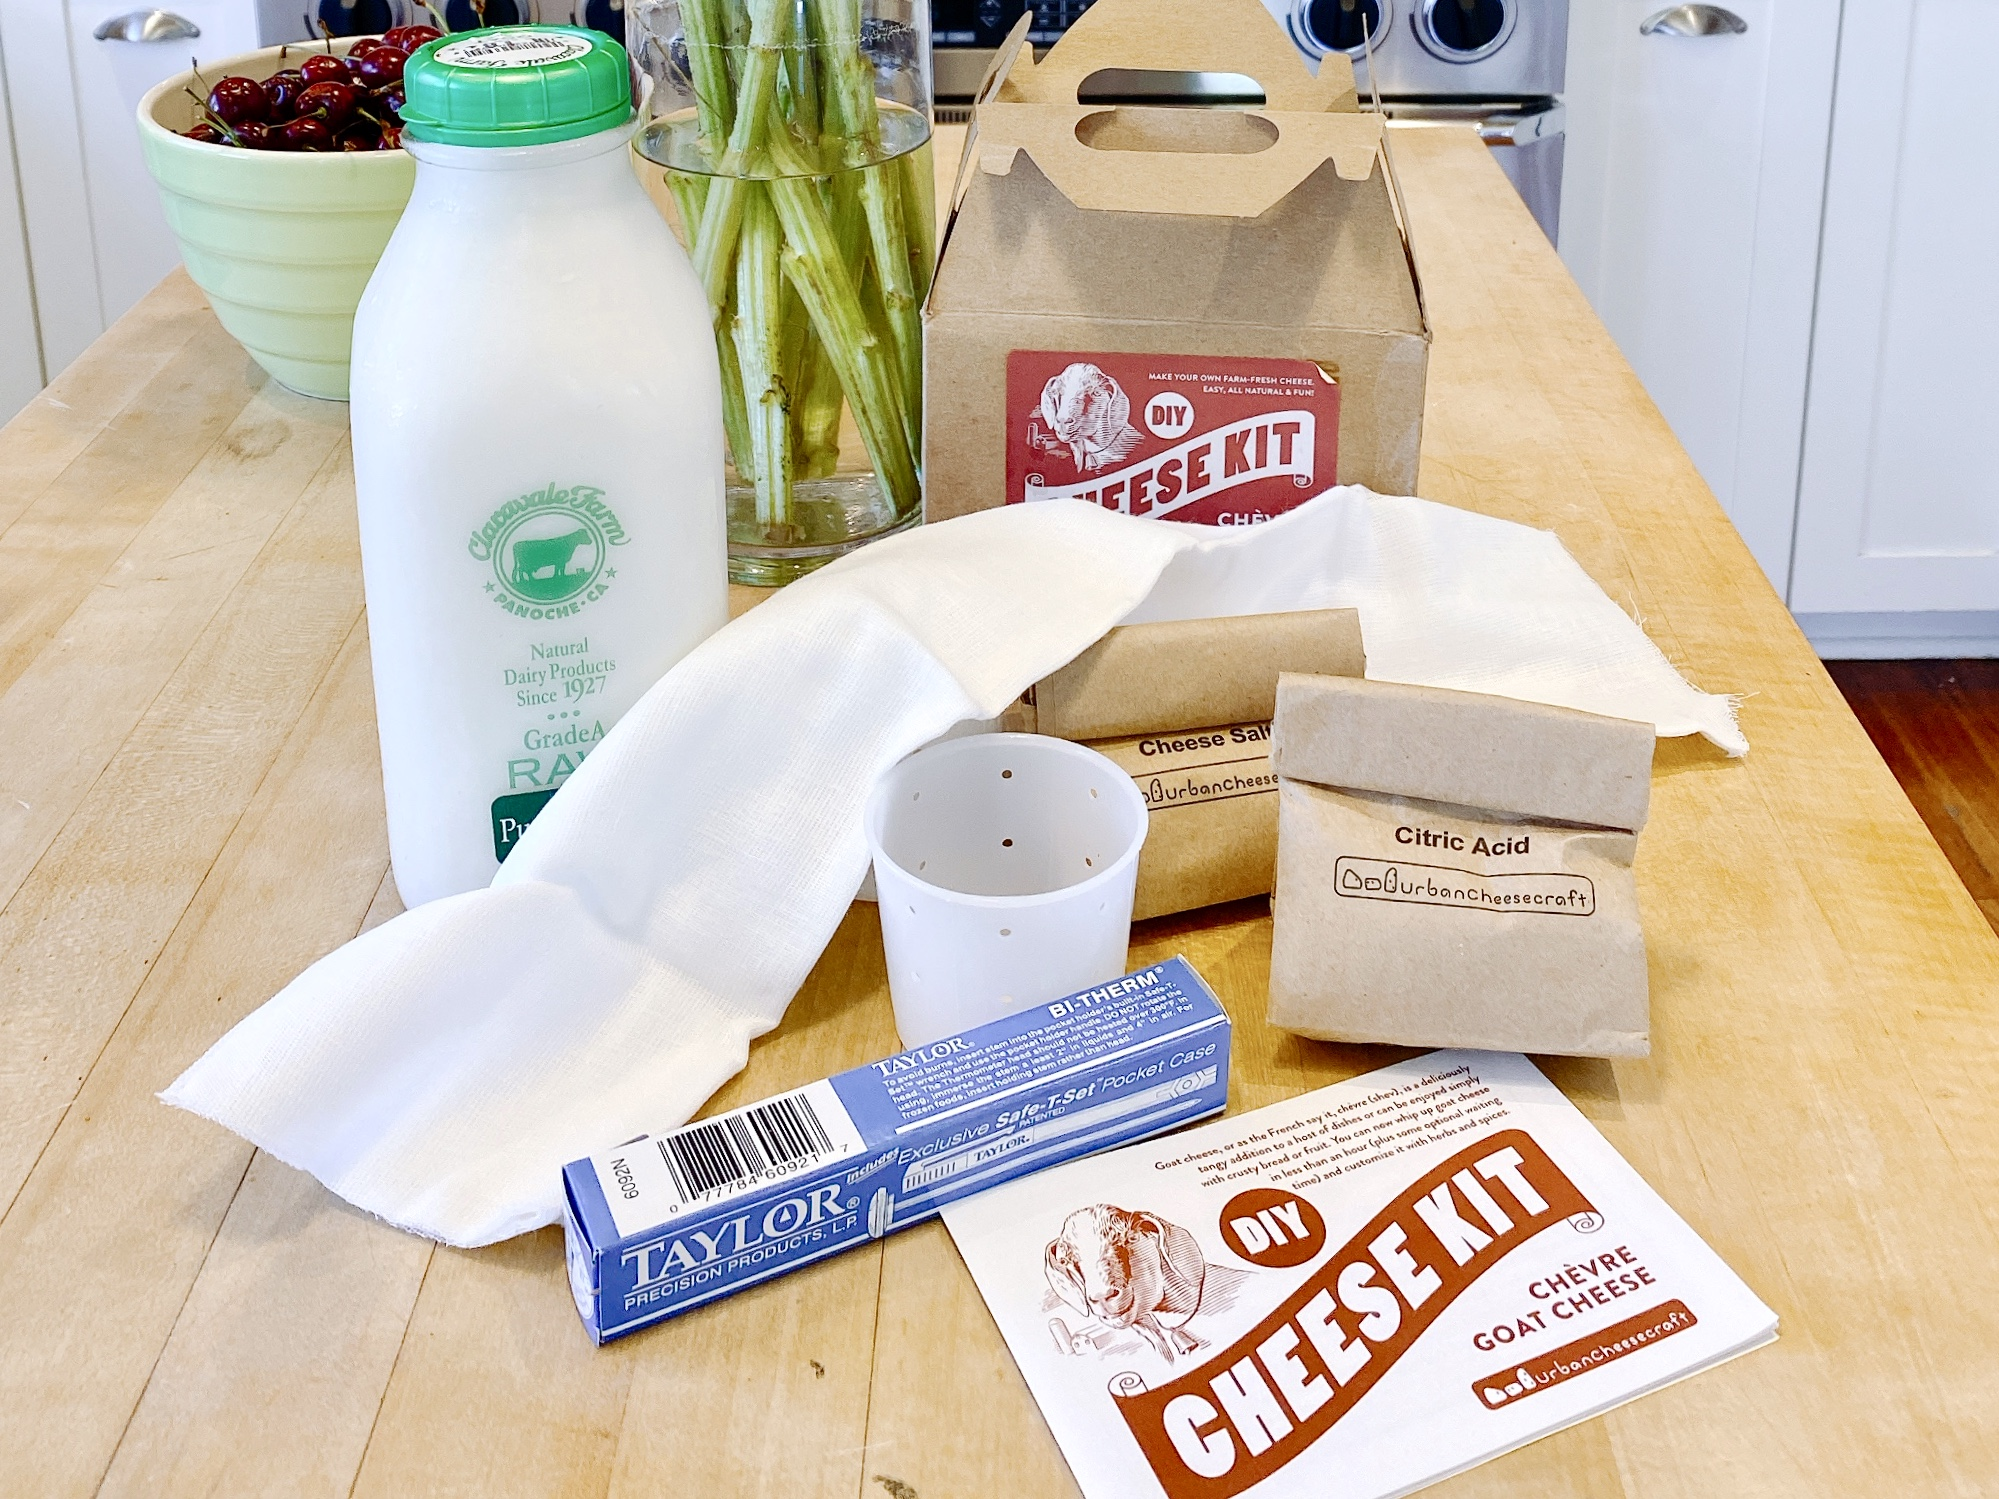 DIY Cheese Kit and goat milk, ready to make goat cheese